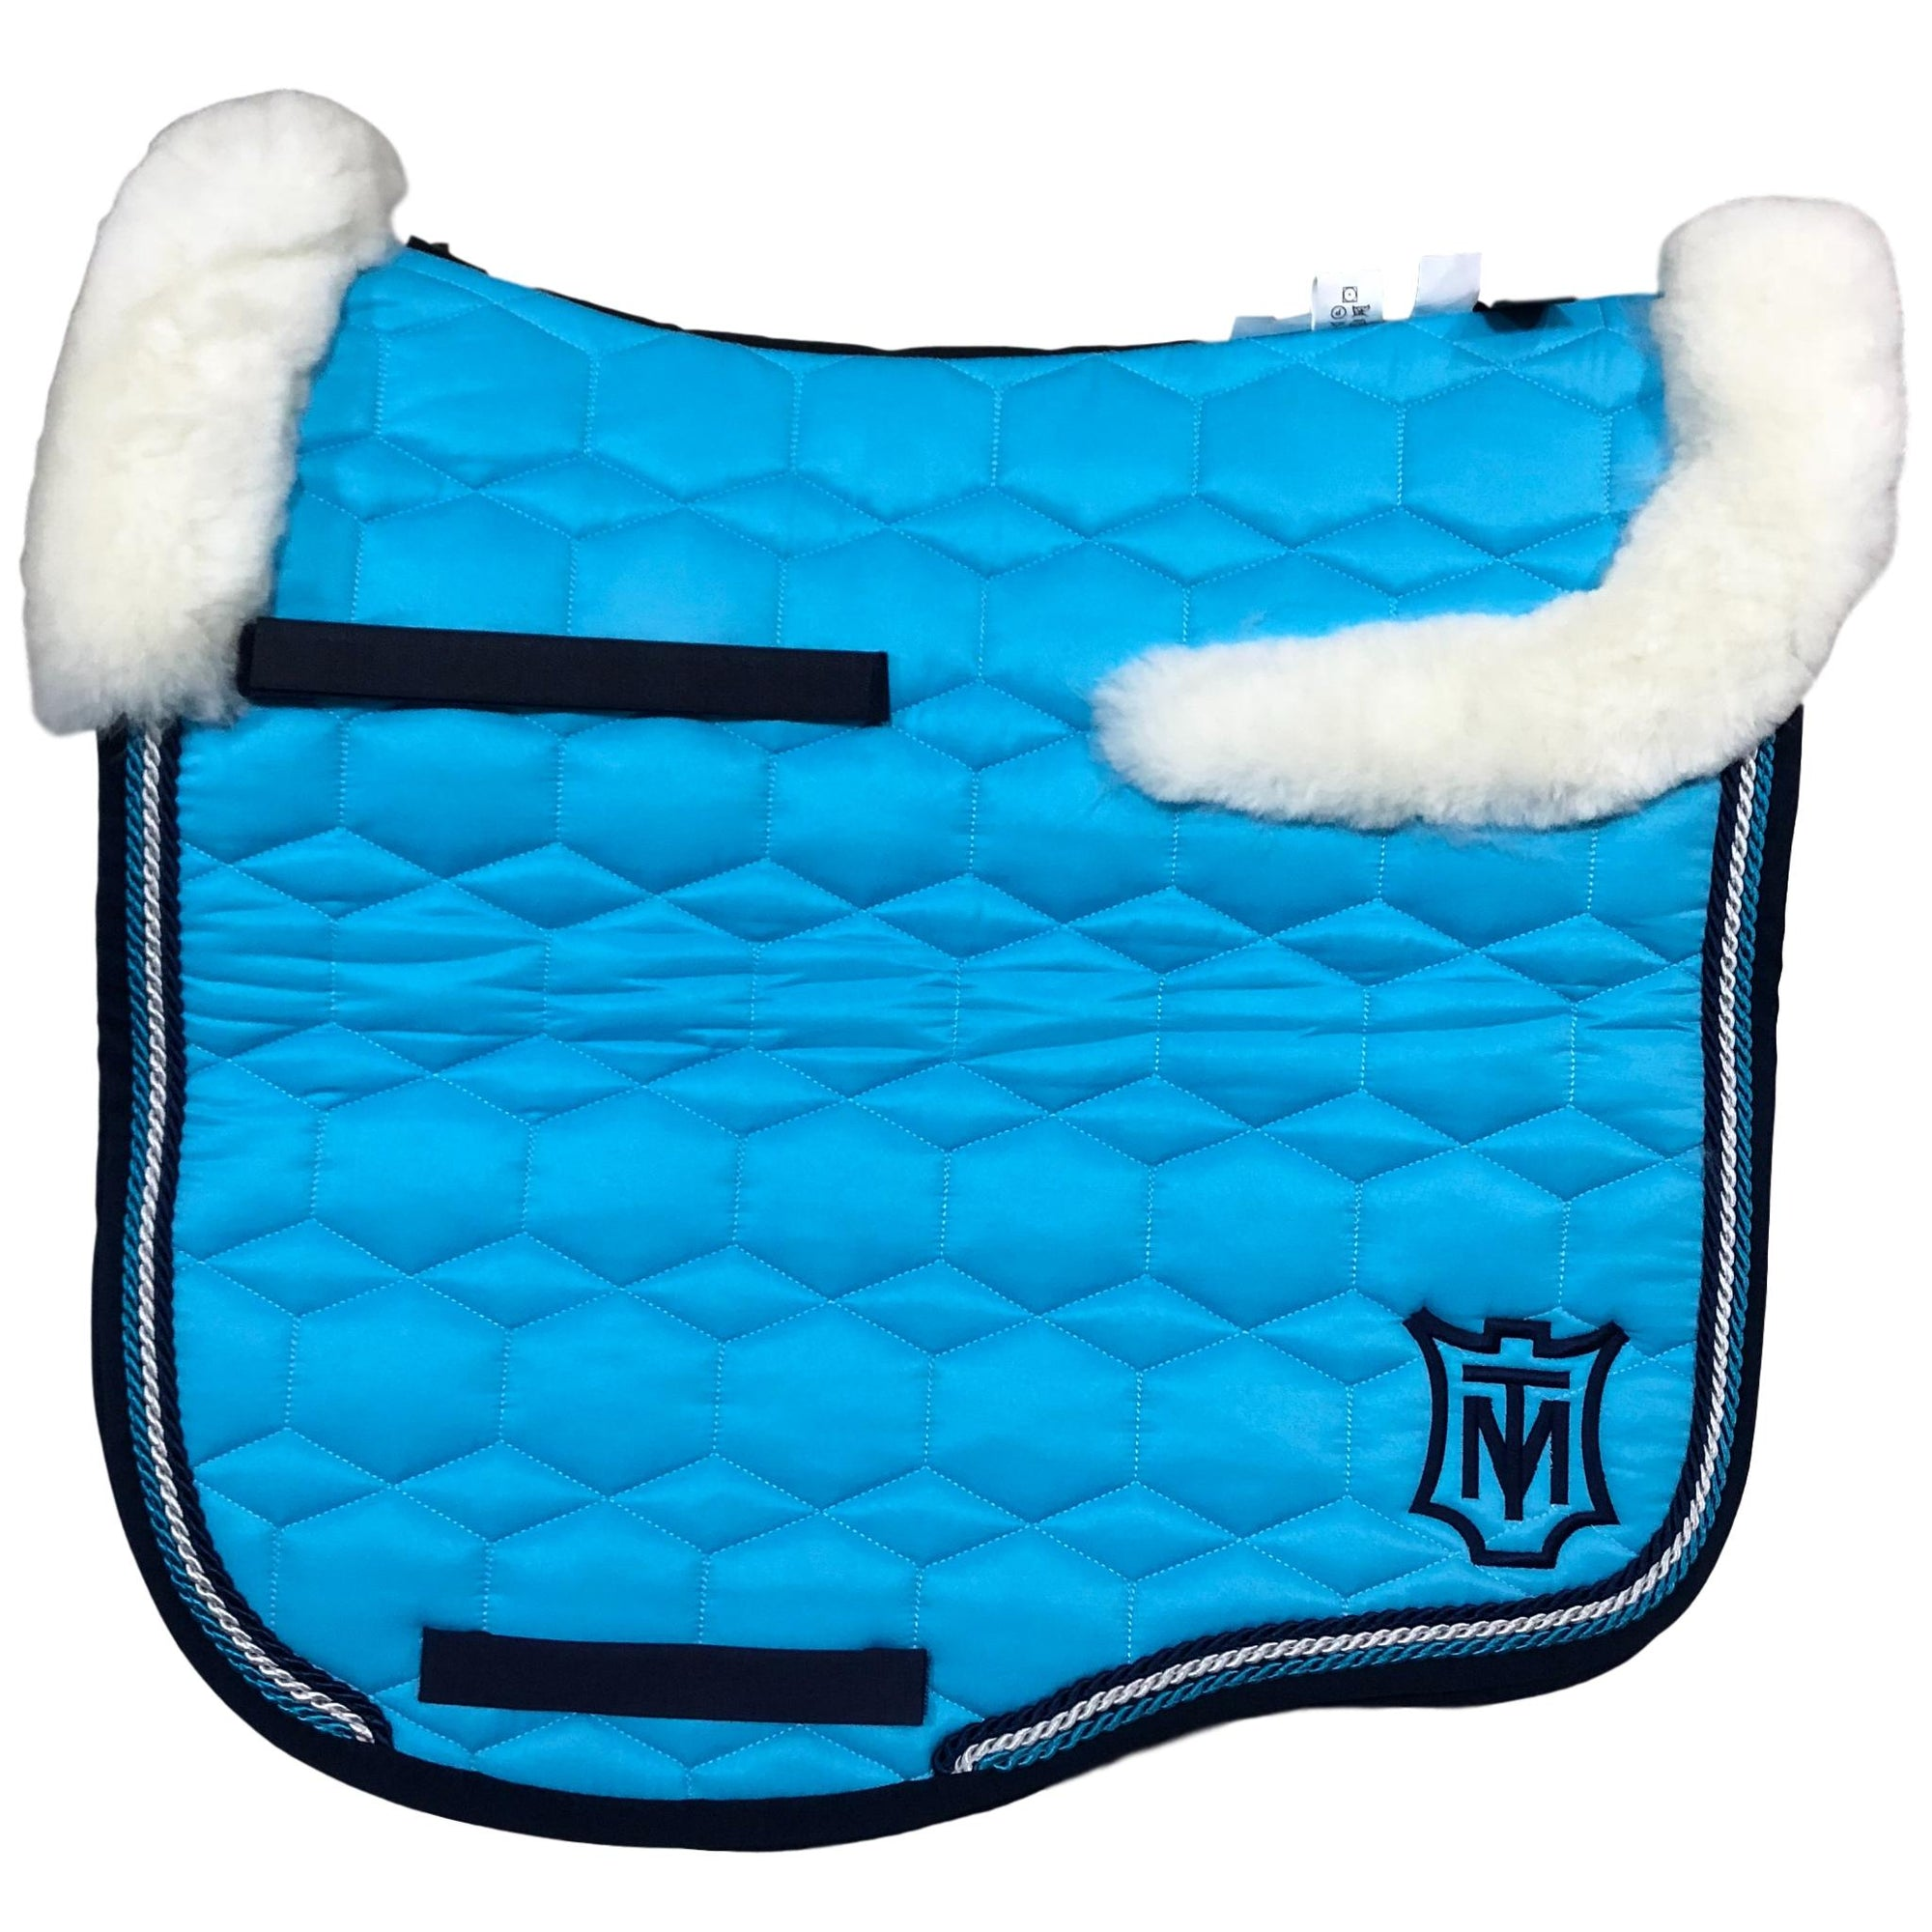 E.A Mattes Instock - M Size/Top Fleece - Turquoise Sheen & Navy